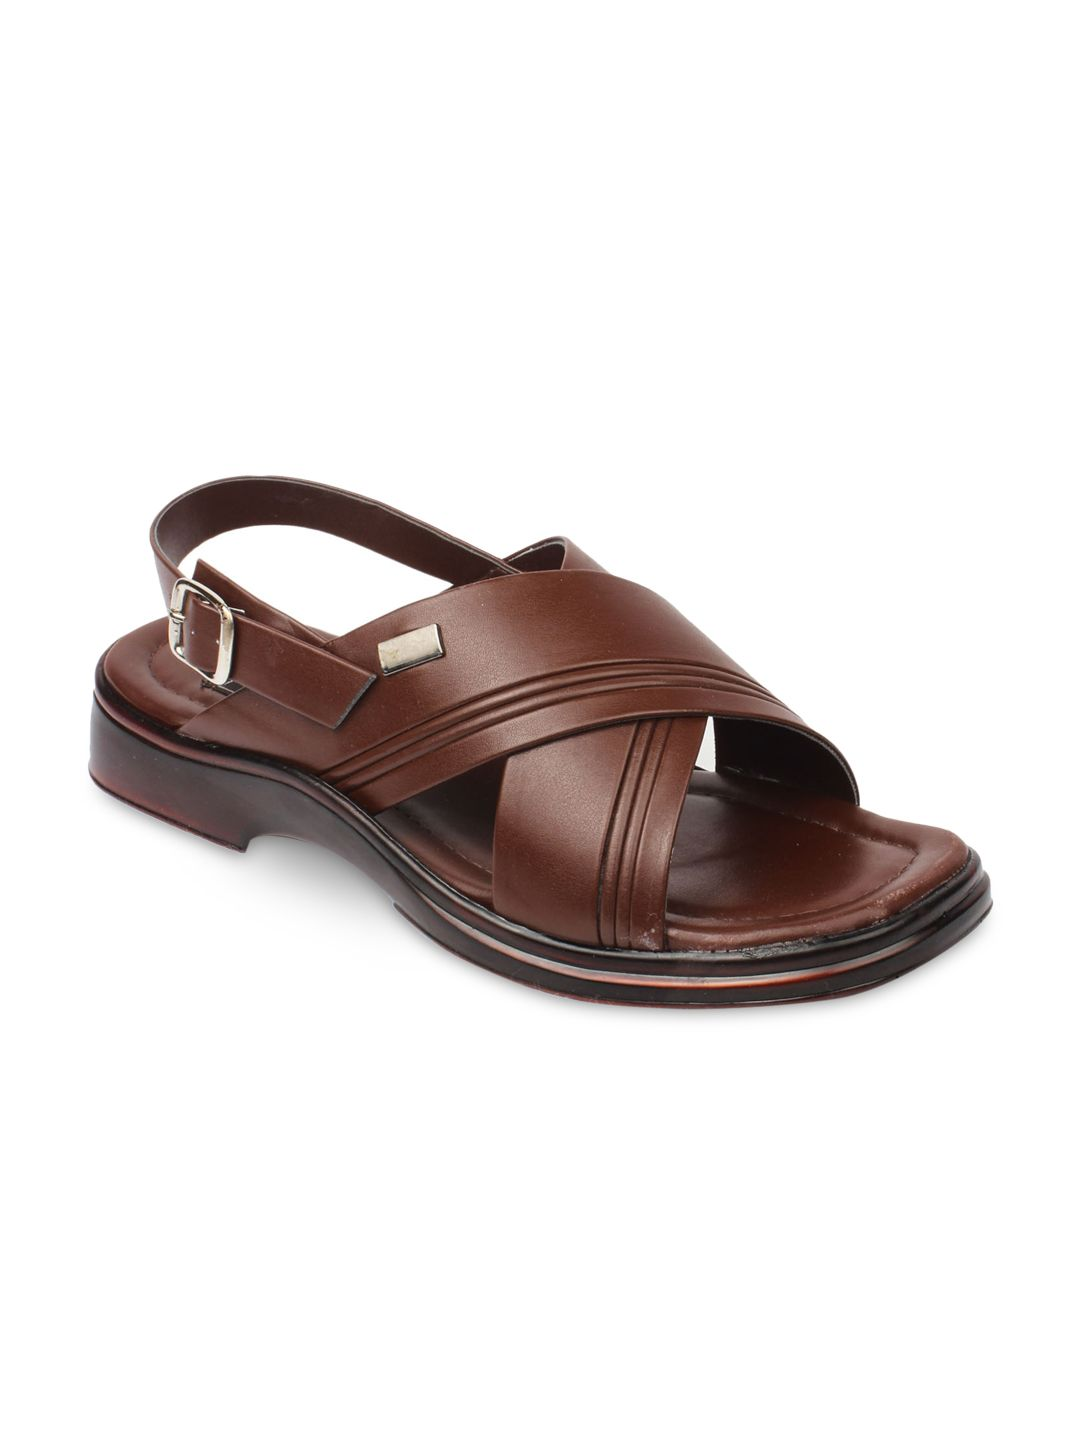 cf7c2d0b57d81 Action Men Brown Sandals for Rs. 499 from Myntra.